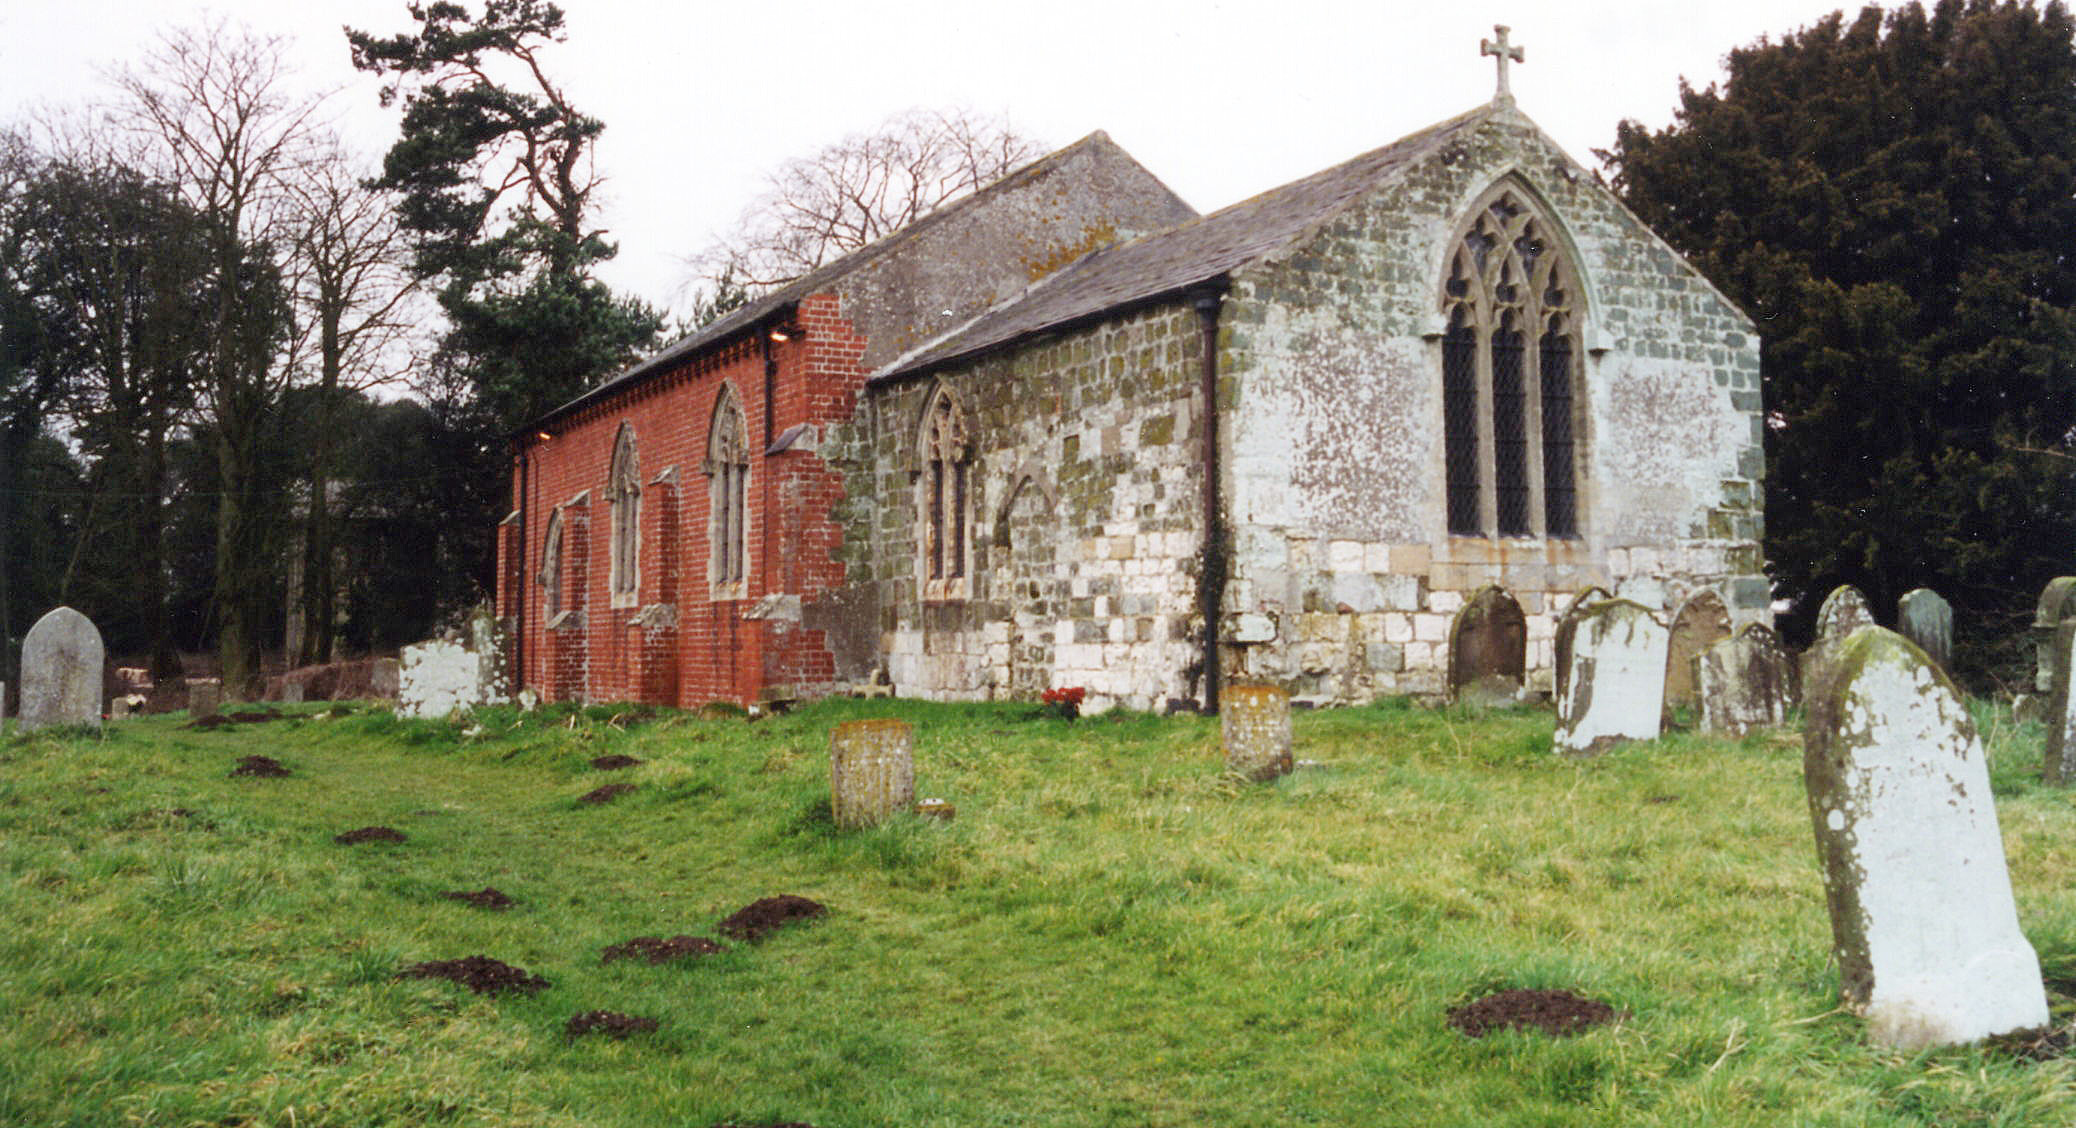 Beesby St. Andrew's Church